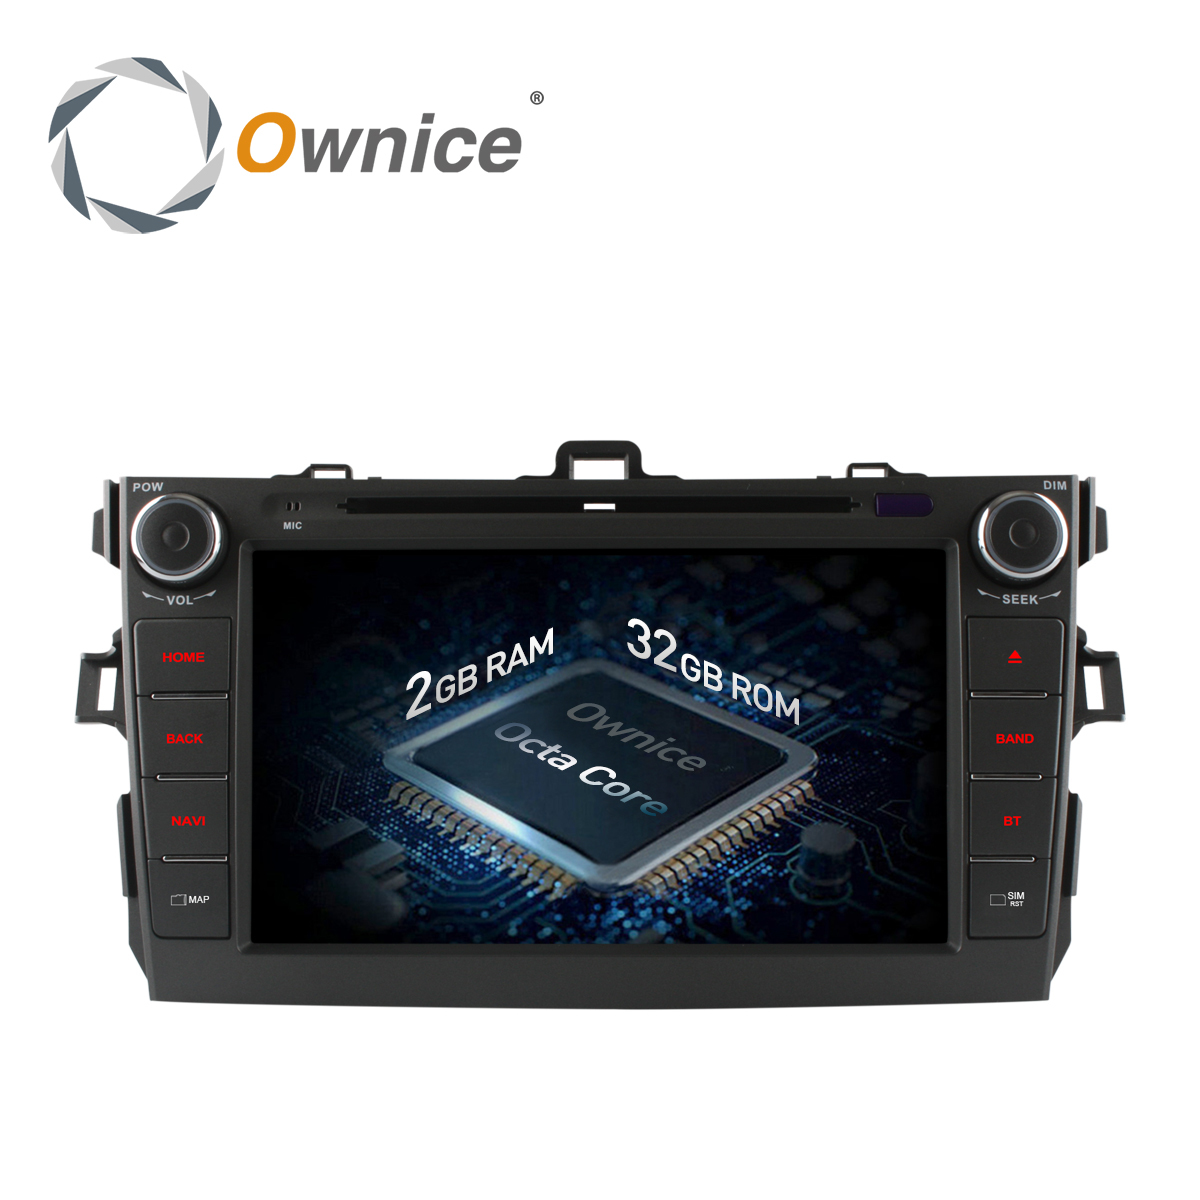 Ownice C500 Android 6.0 Octa 8 Core for Toyota Corolla 2007 - 2011 Car DVD Radio GPS Navi wifi 4G LTE Network 2GB RAM 32GB ROM